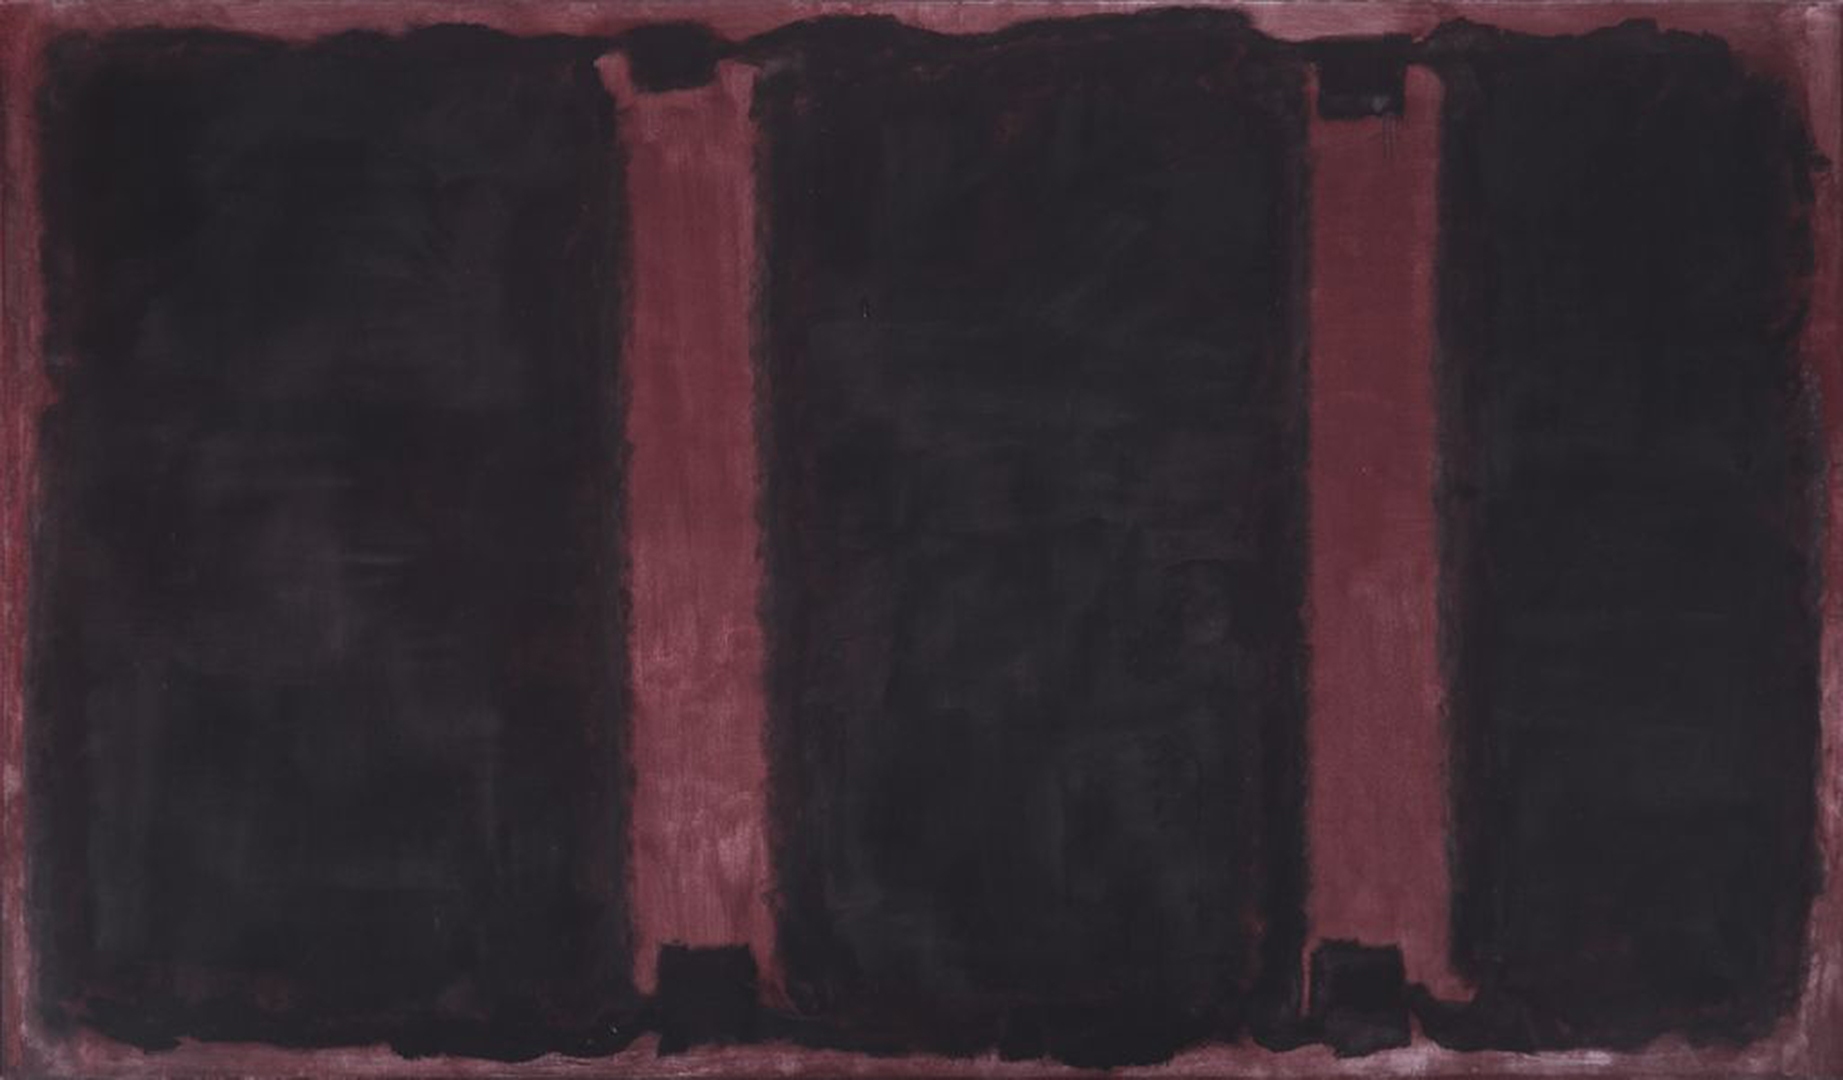 Mark Rothko,  Panel Two from the Harvard Murals , 1962 tempera on canvas, 267.3 x 458.8 cm